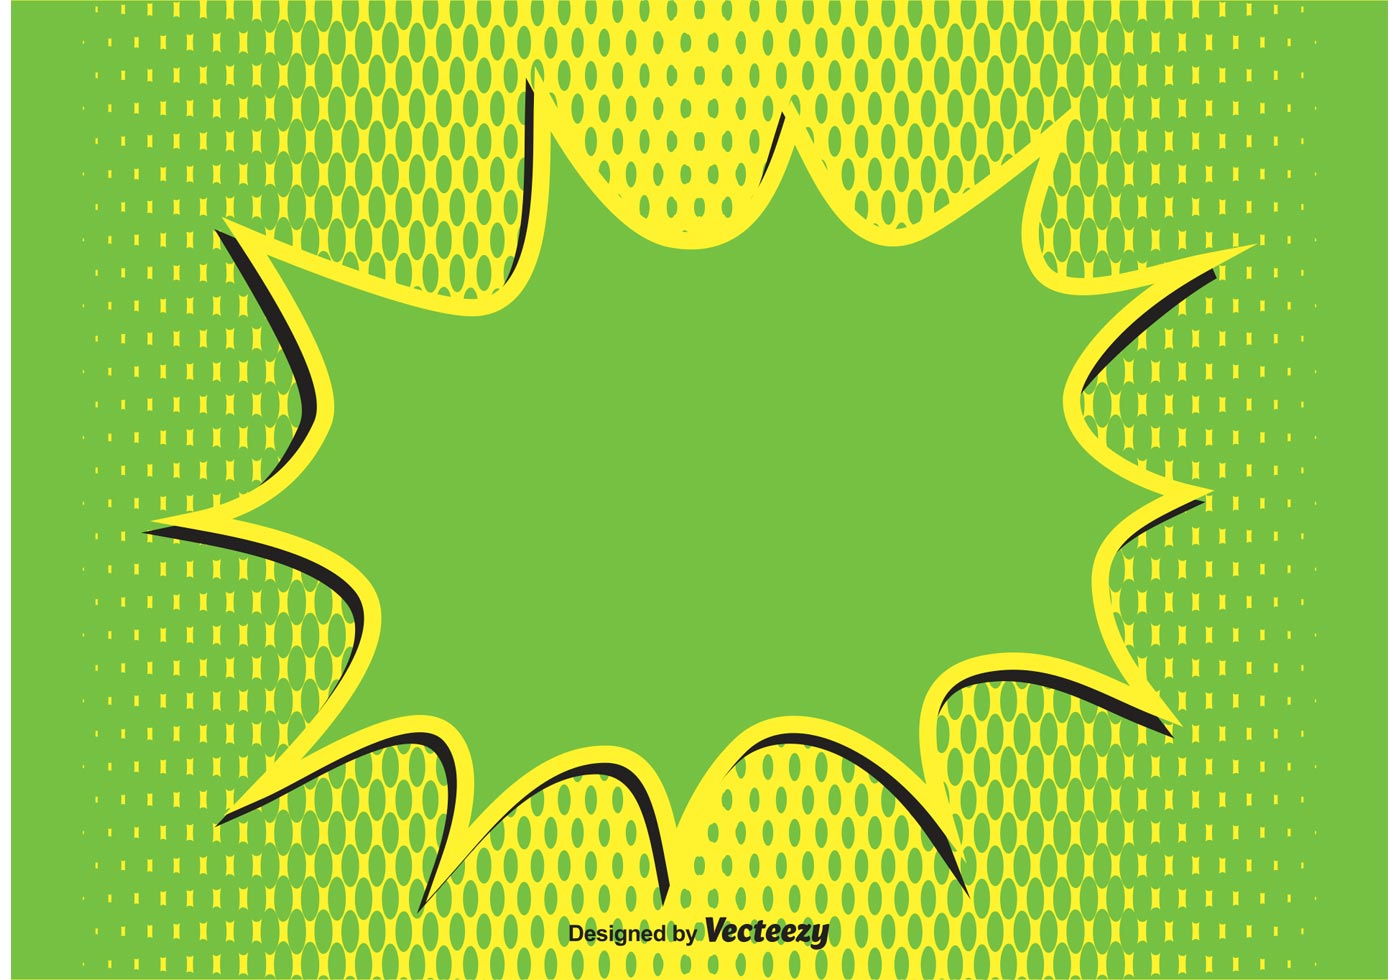 Comic Style Splash Background Illustration - Download Free Vector